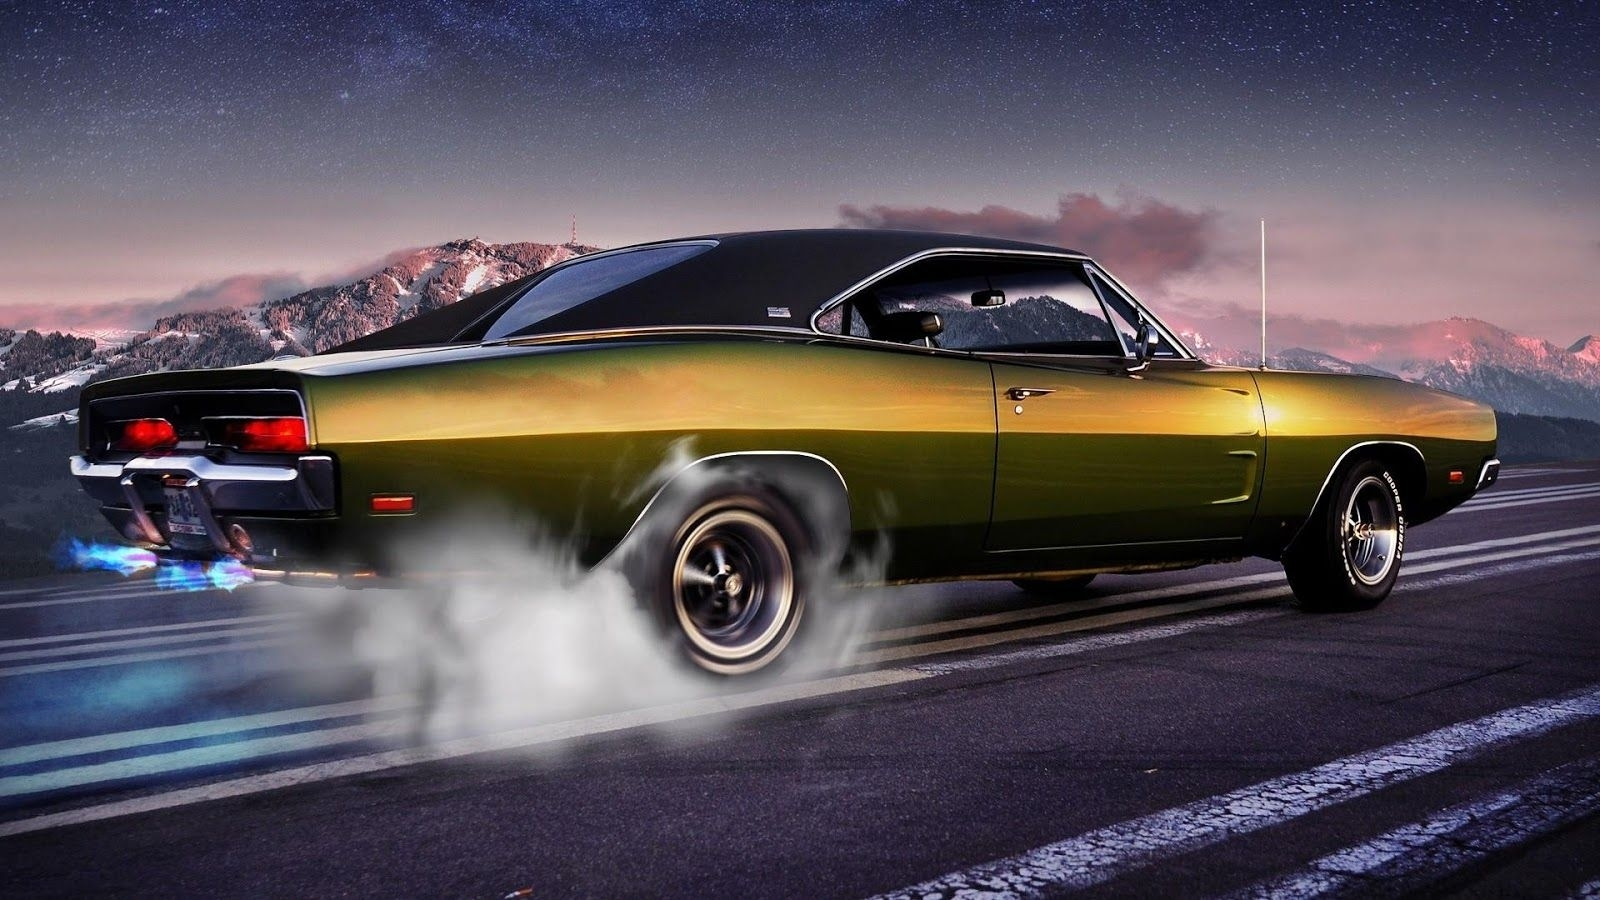 10 Latest Old Muscle Car Wallpapers Full Hd 1080p For Pc Desktop